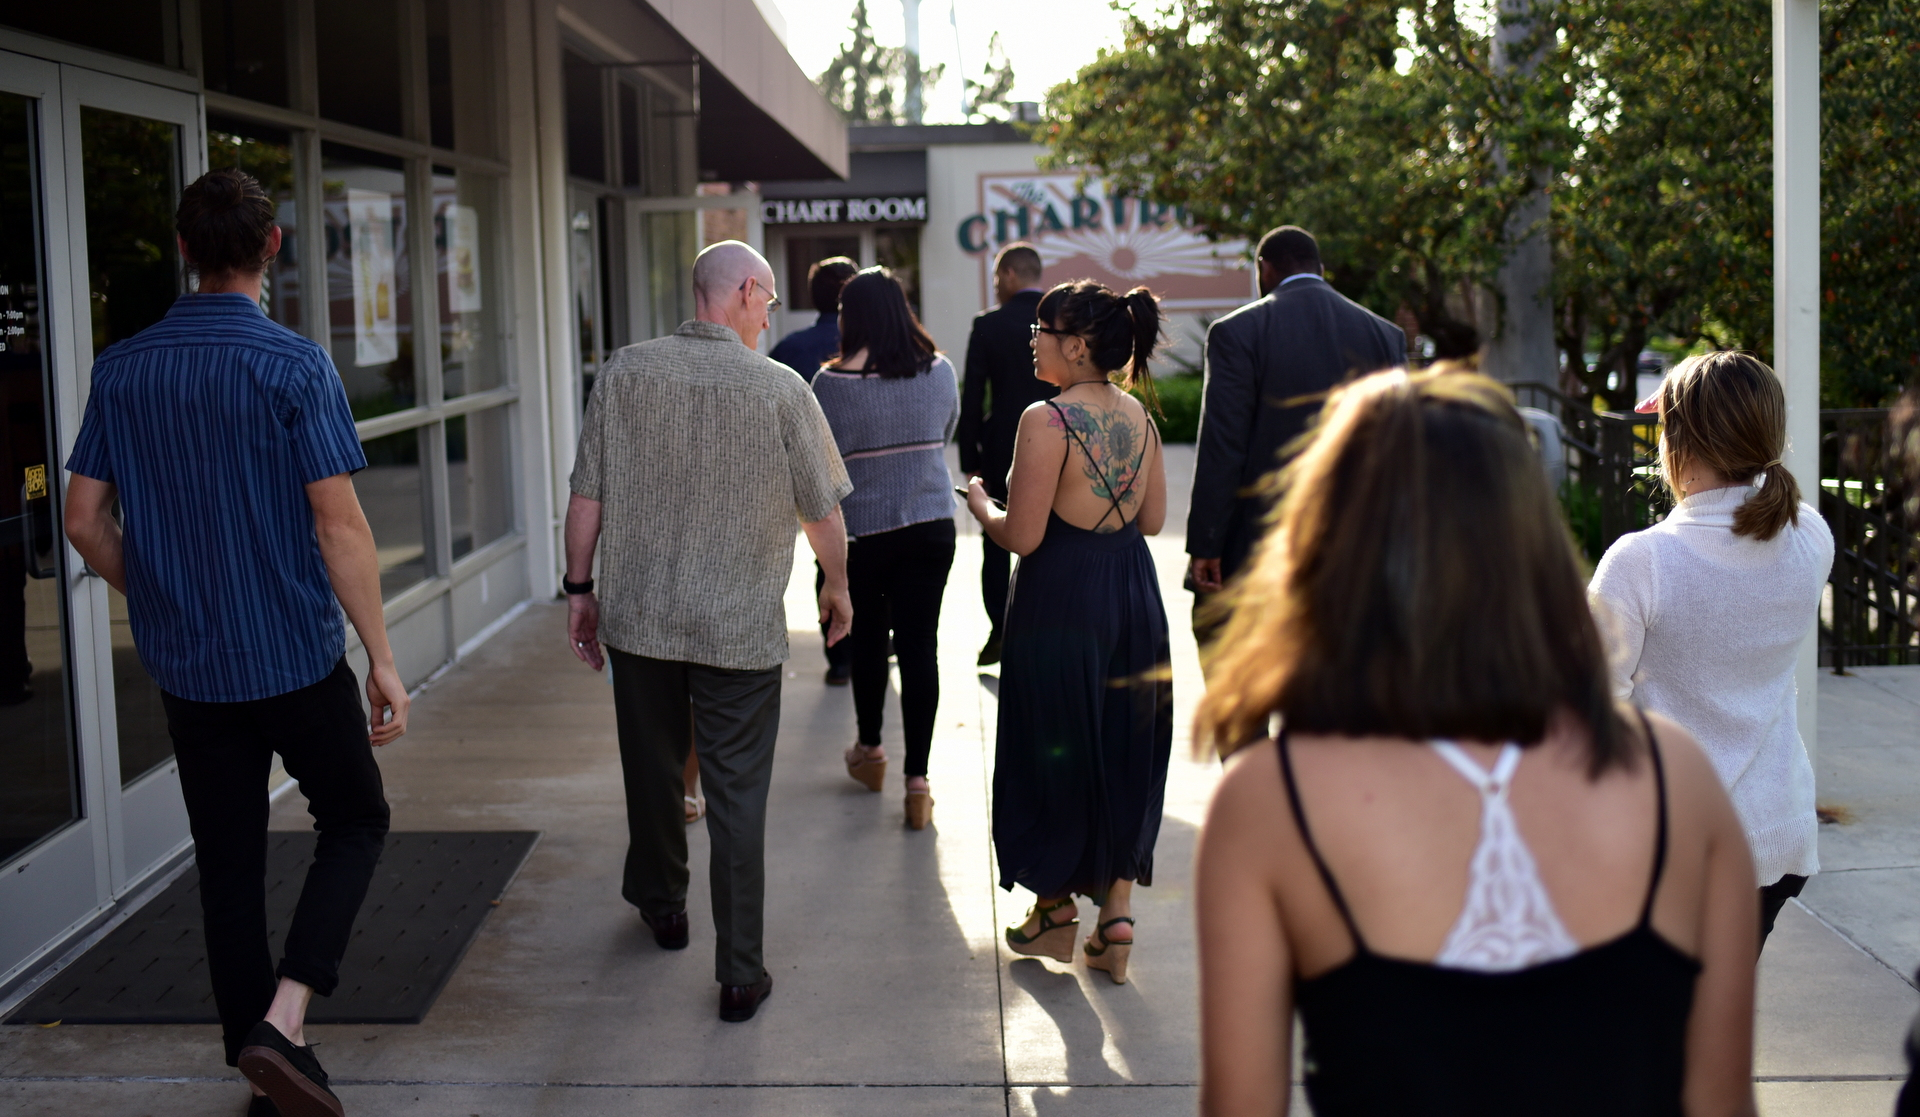 TEDxCSULB '17 speakers and organizers walking toward the CSULB Chartroom for dinner